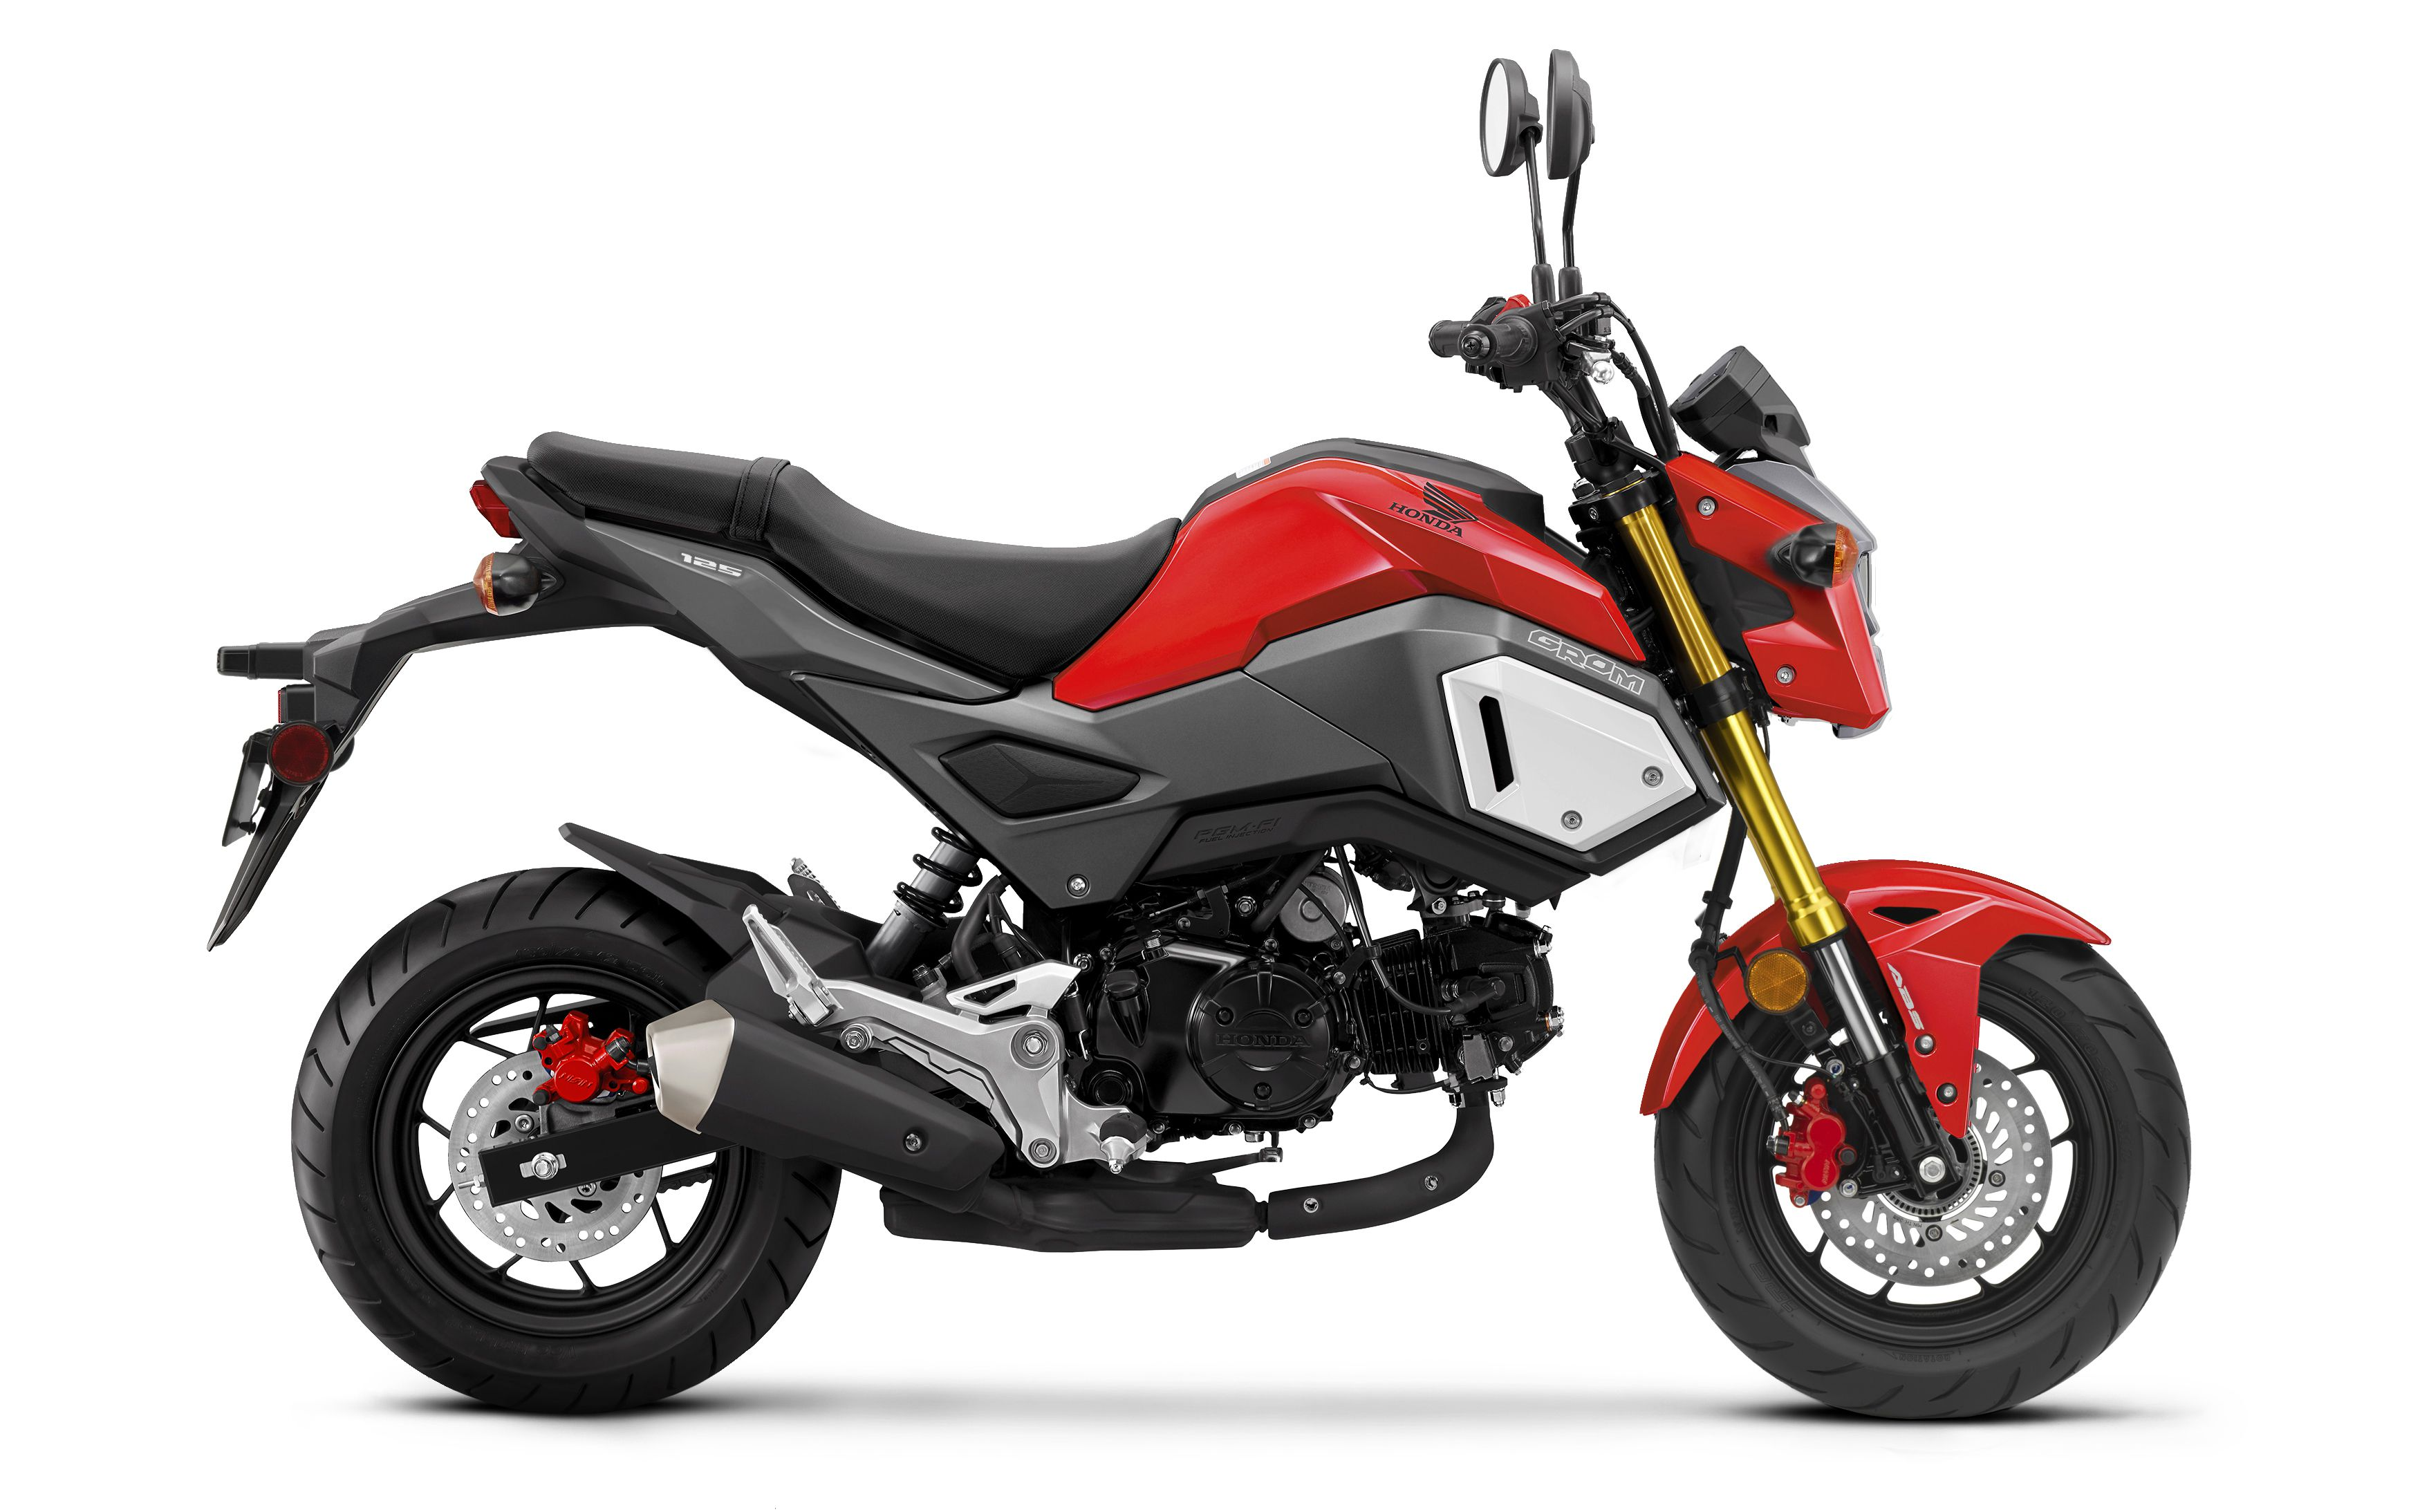 The 2020 Honda Grom ABS in Cherry Red.